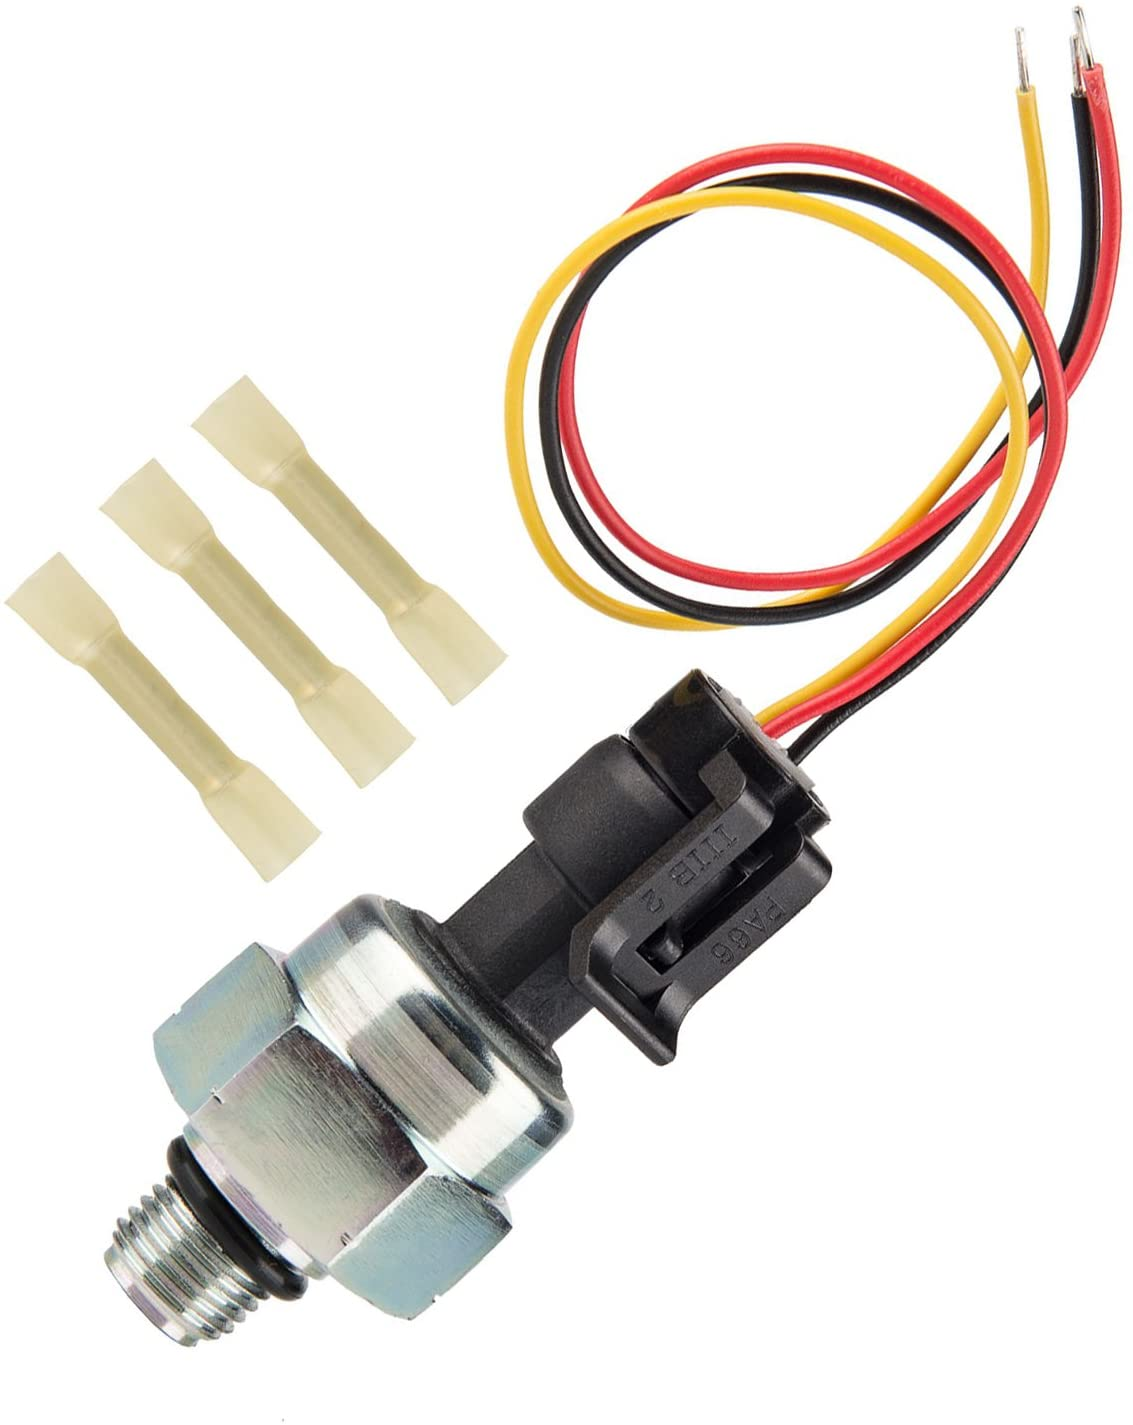 Ford 7.3 ICP Sensor with Pigtail Connector, Fits 1997-2003 Ford 7.3L Diesel Engines Powerstroke, Injection Control Pressure Sensor